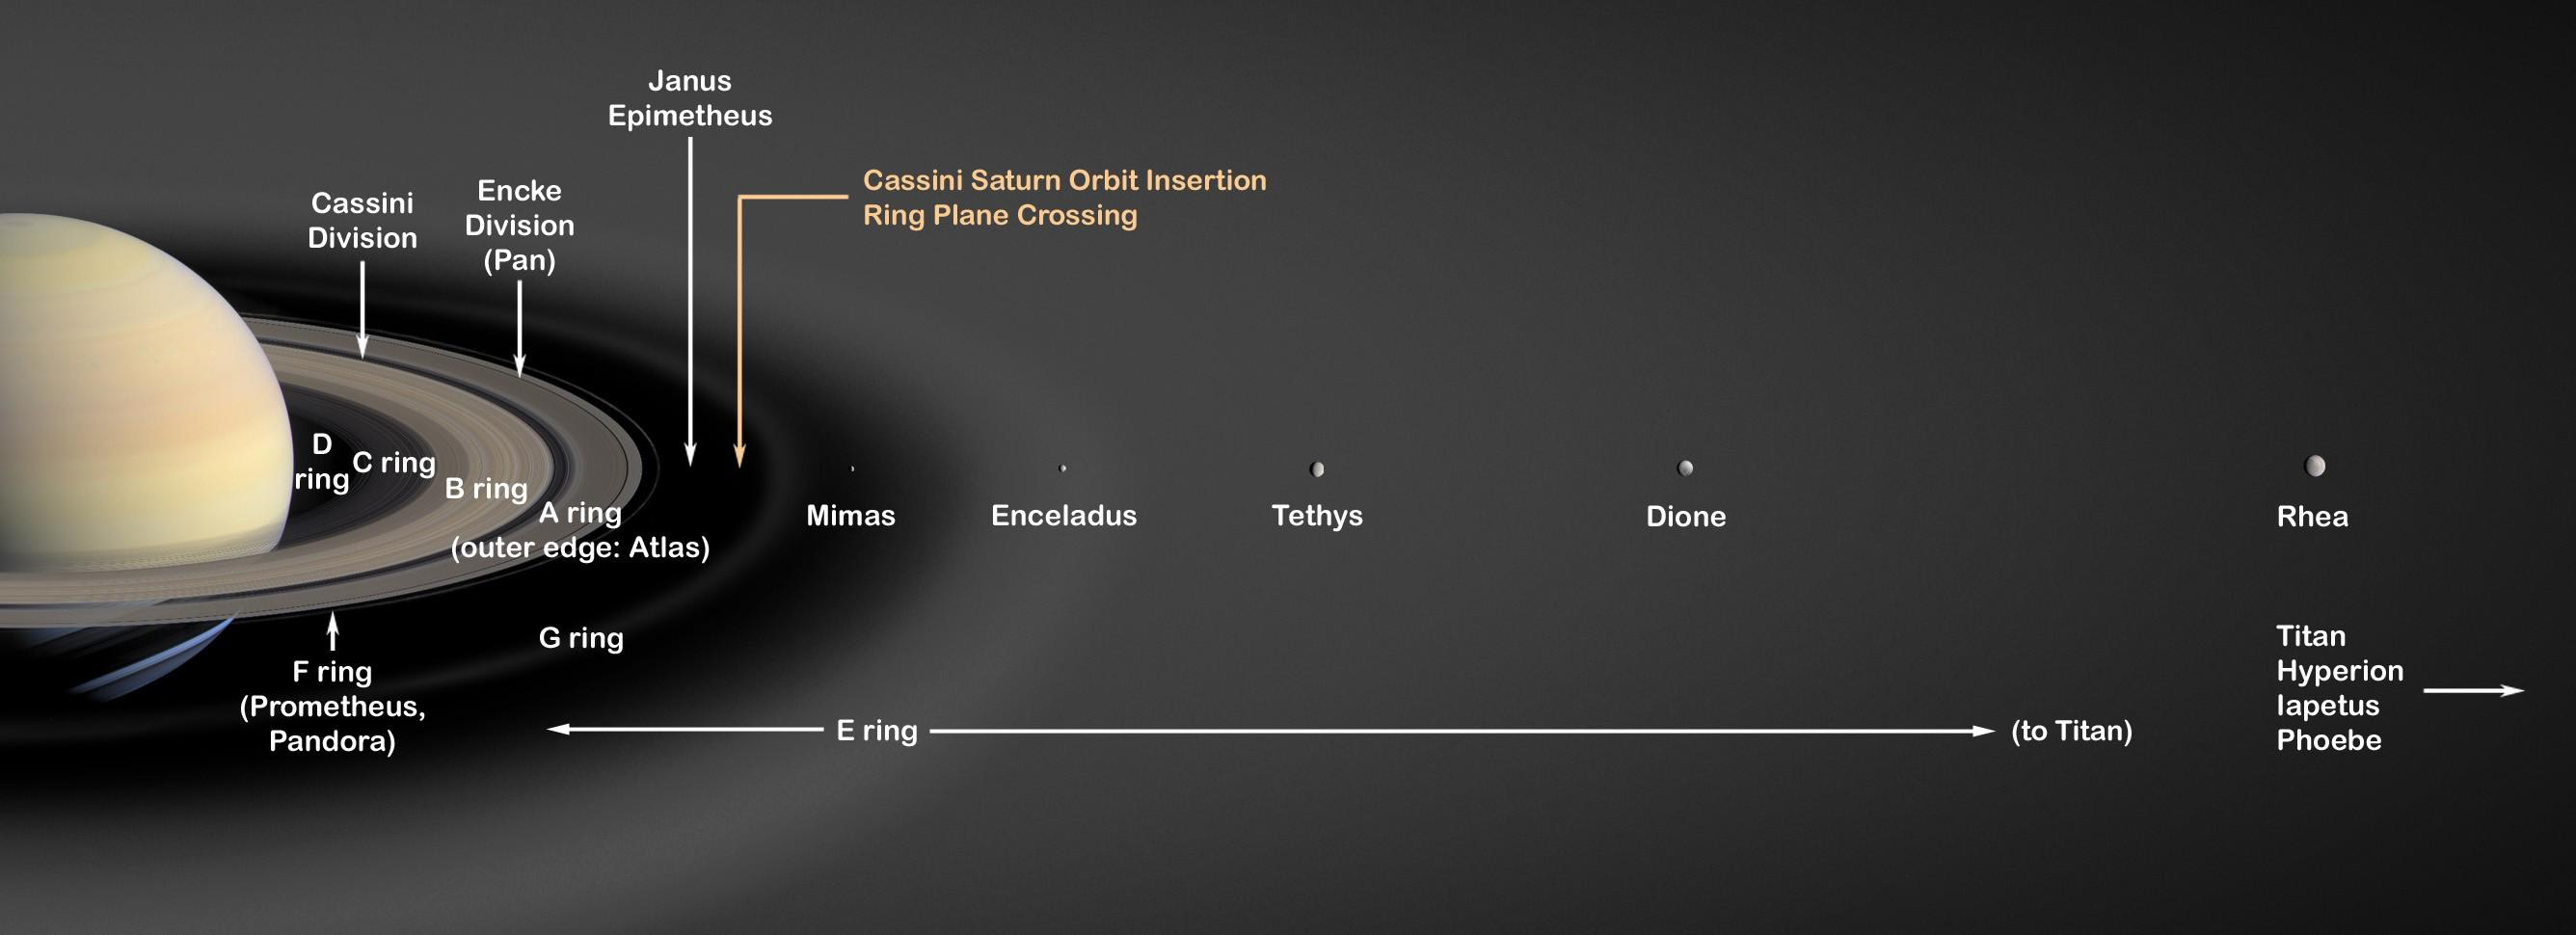 diagram showing saturn's rings and relative distance of its moons